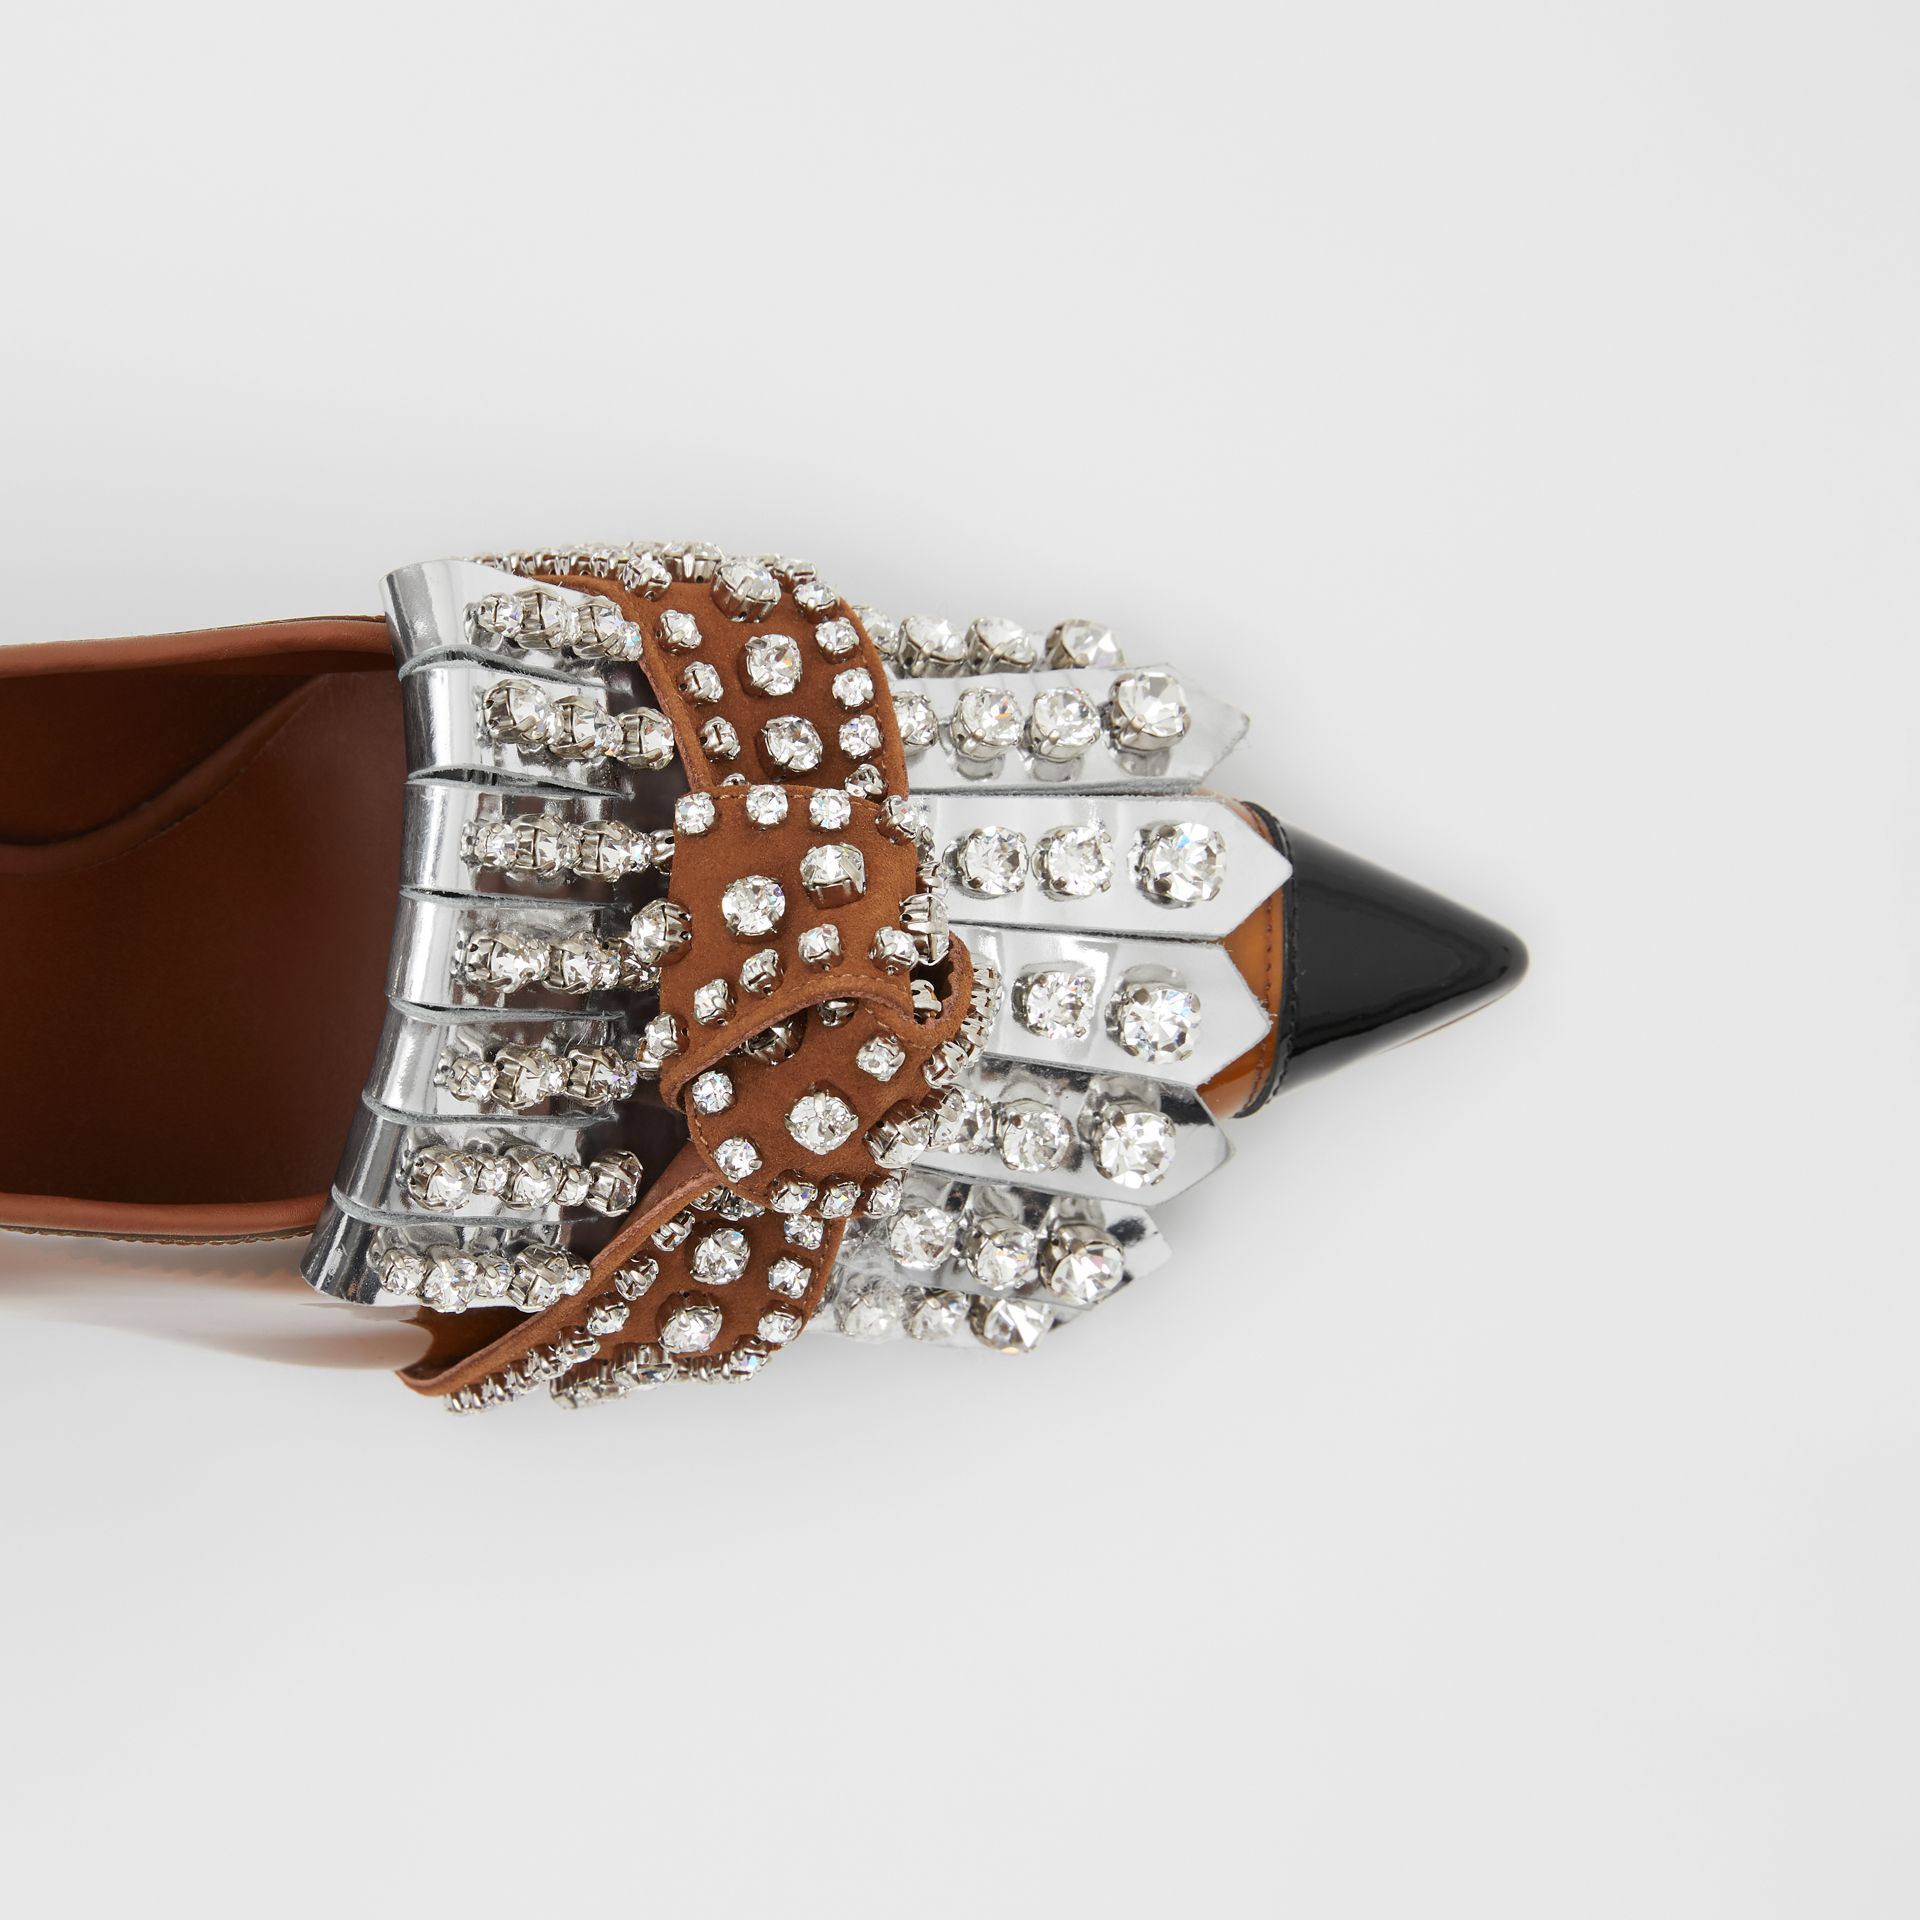 Crystal Kiltie Fringe Vinyl and Leather Point-toe Pumps in Malt Brown/black - Women | Burberry - gallery image 1